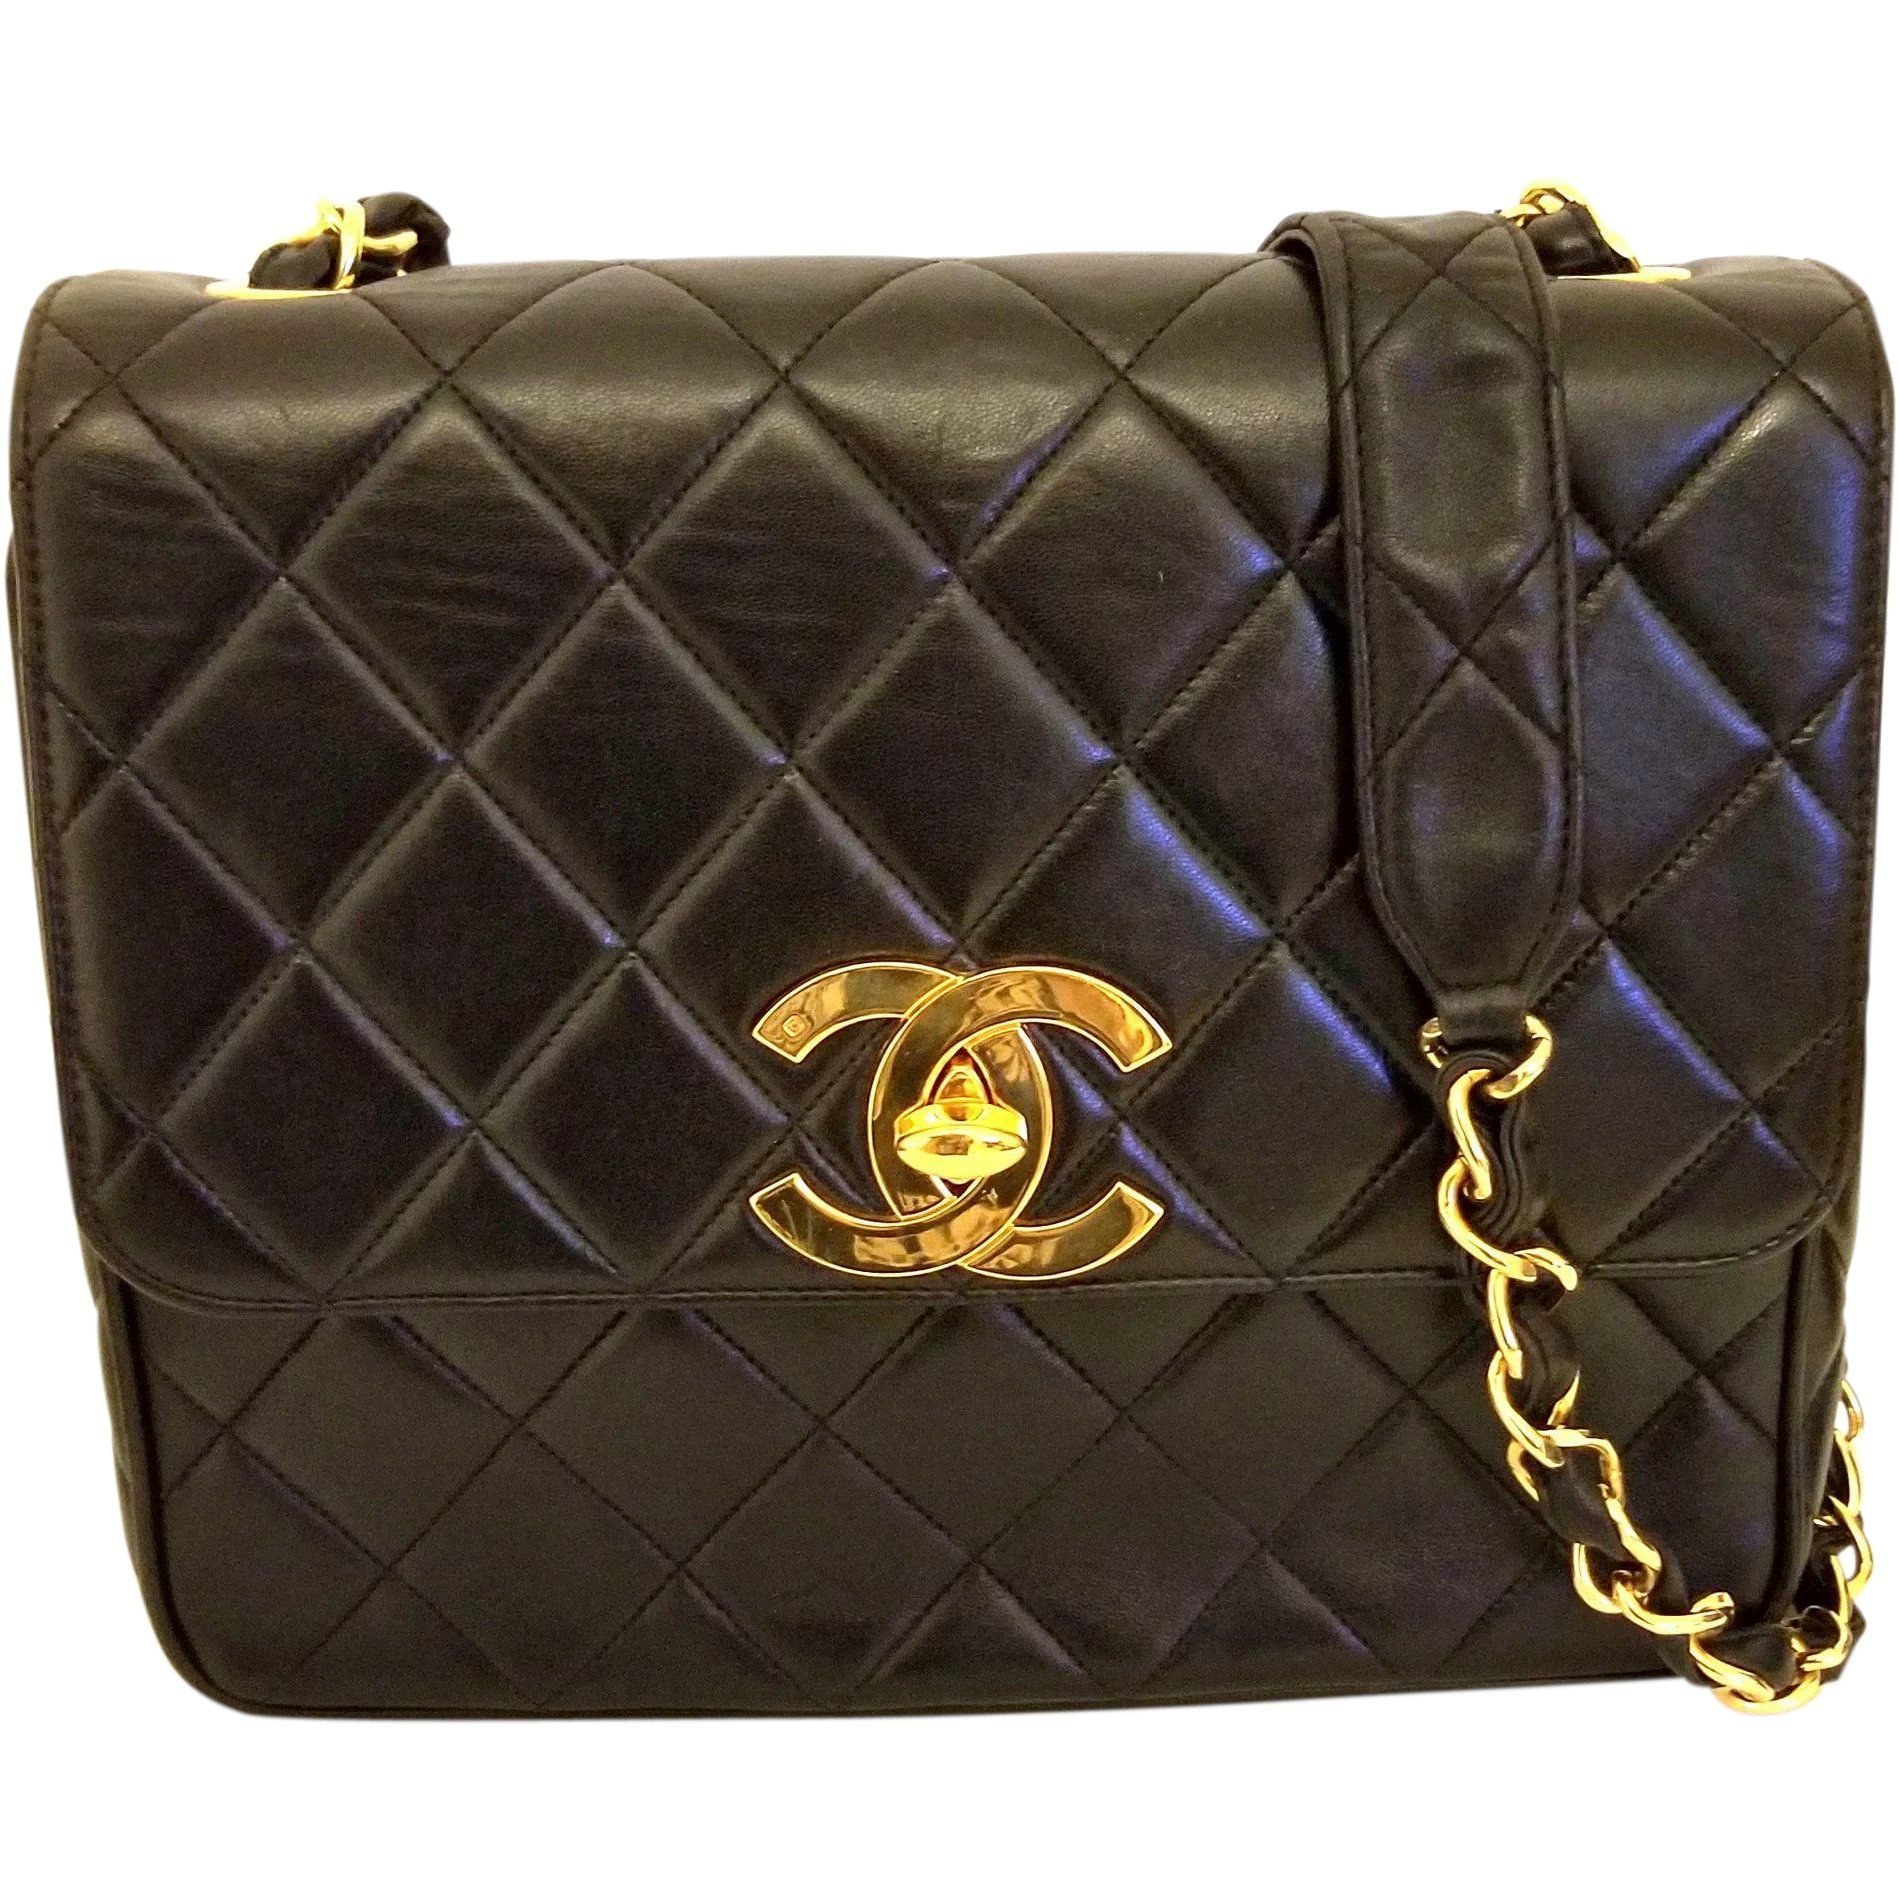 85adc56dfd17 Vintage Chanel Black Lambskin Large CC Shoulder Bag in 2019